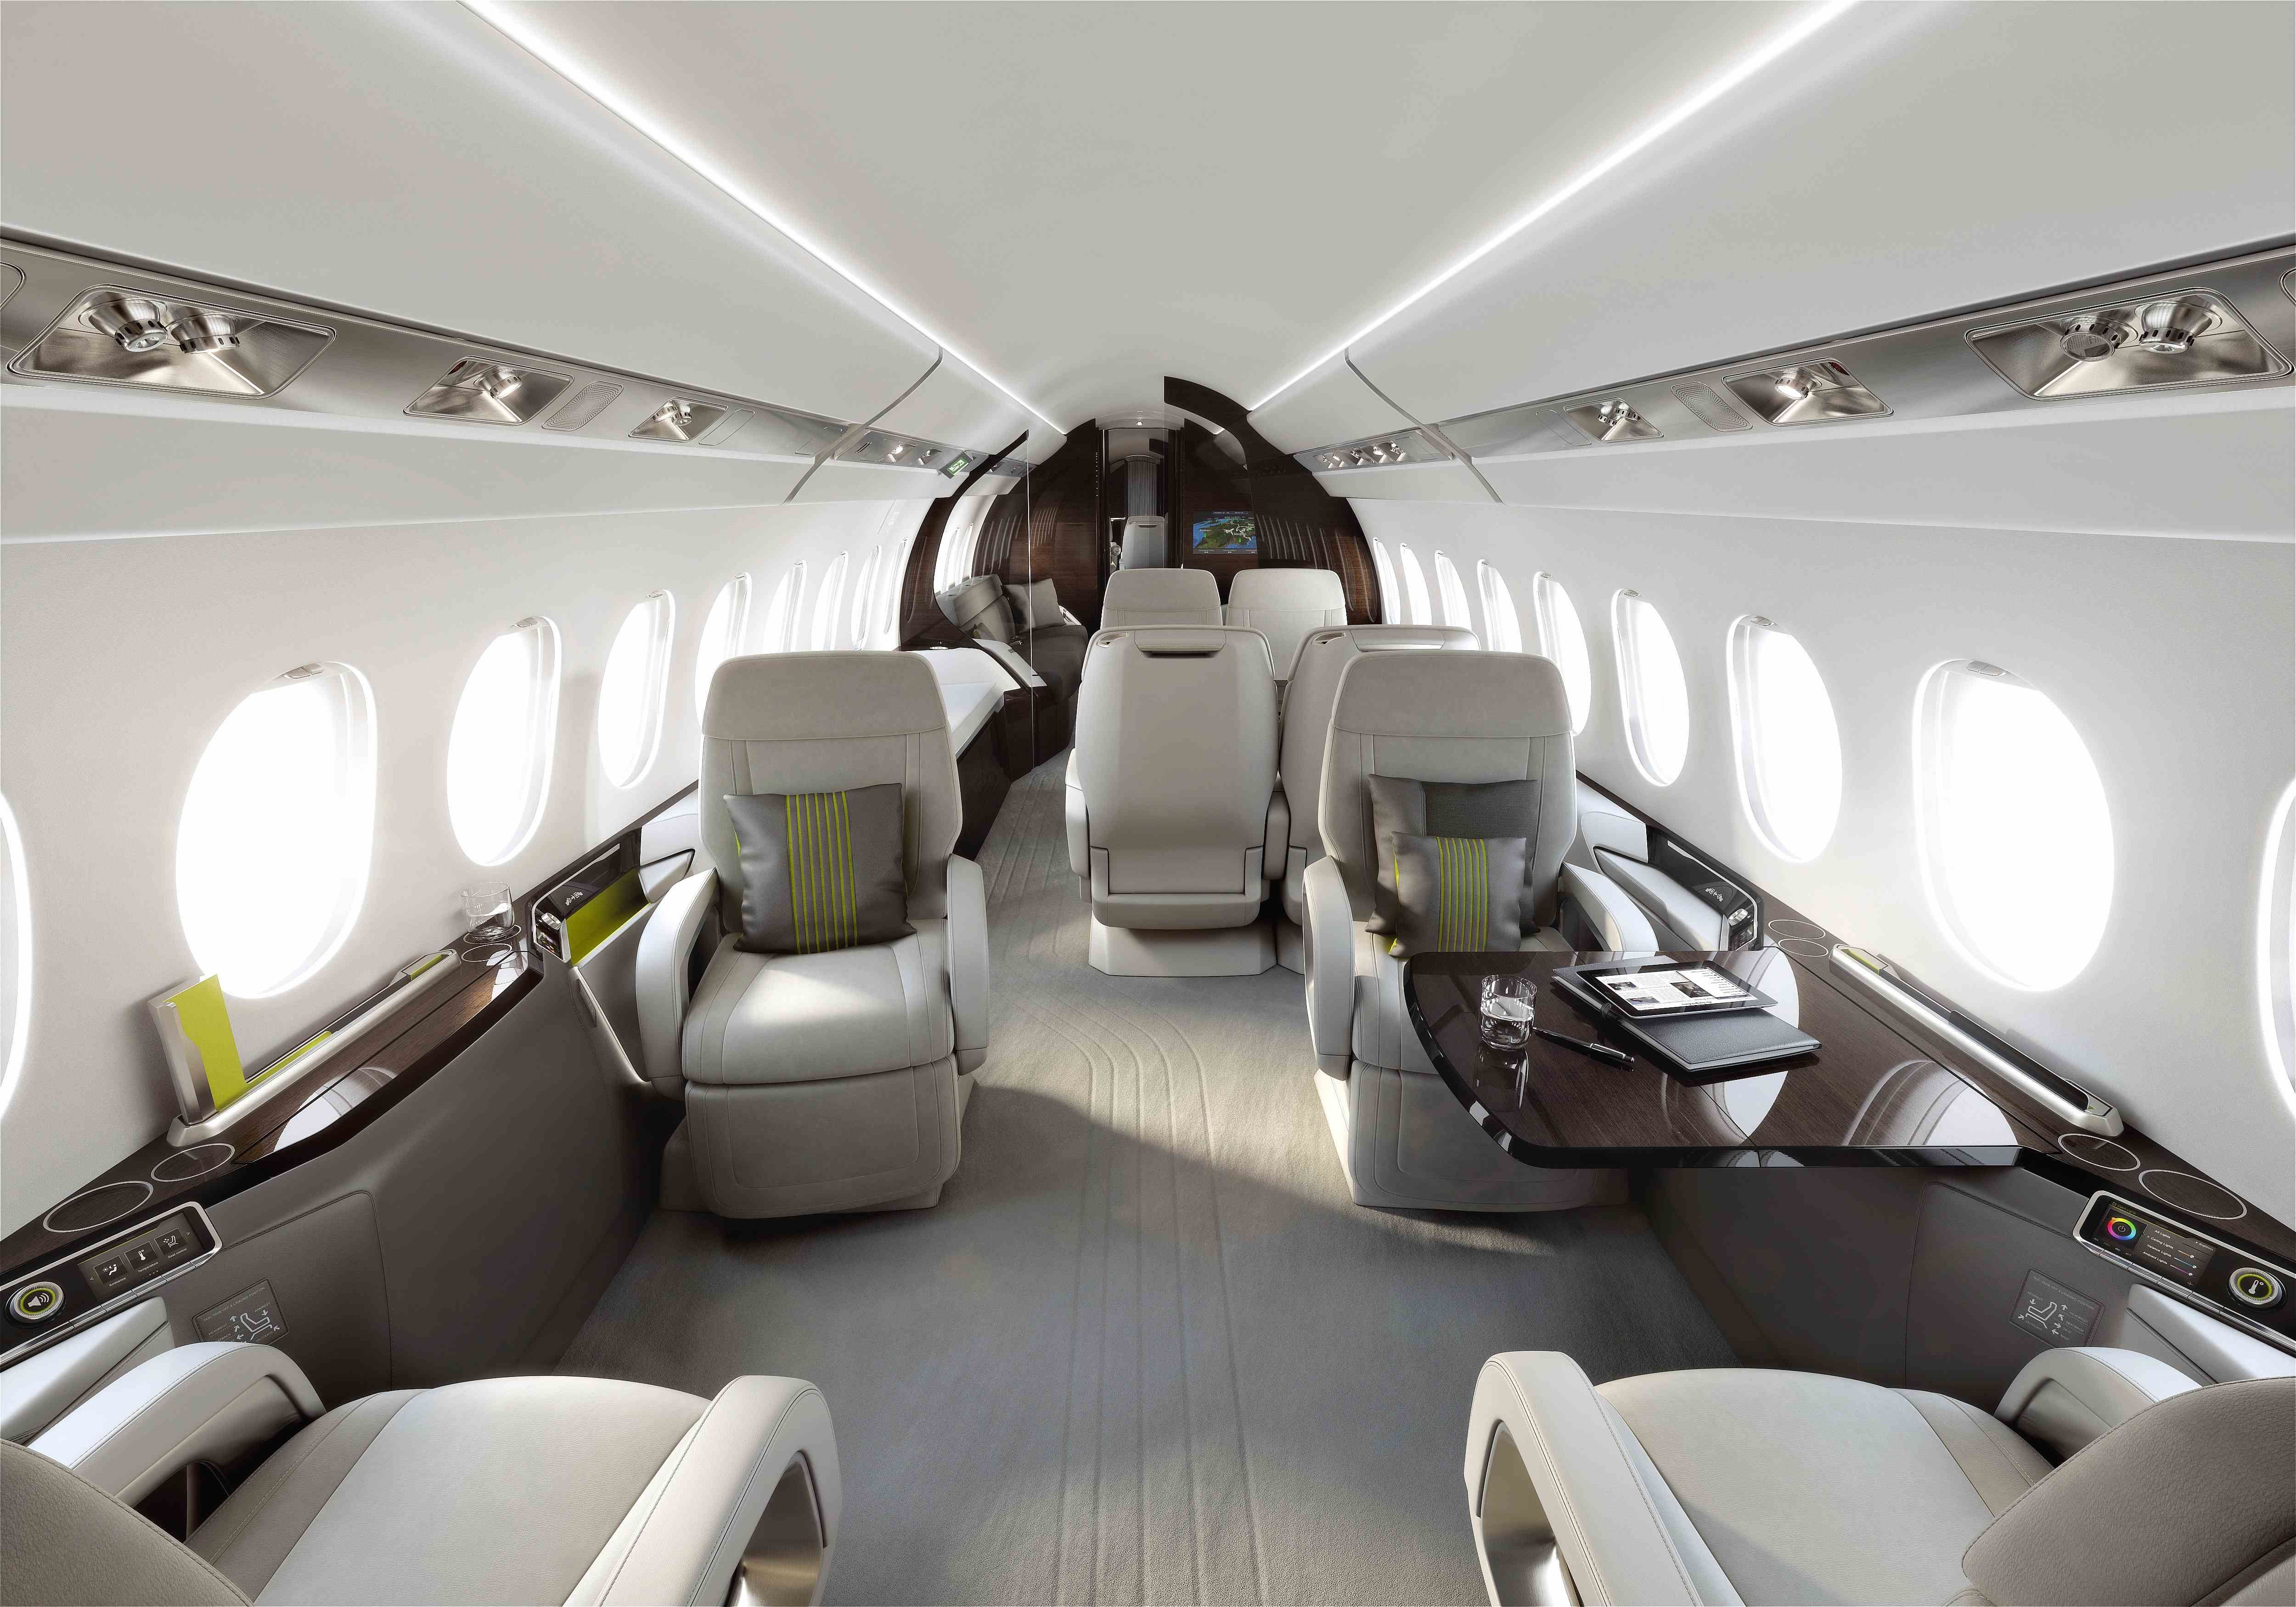 Private jet interior furnished like a vintage train aviation - Find This Pin And More On Private Jet Interior